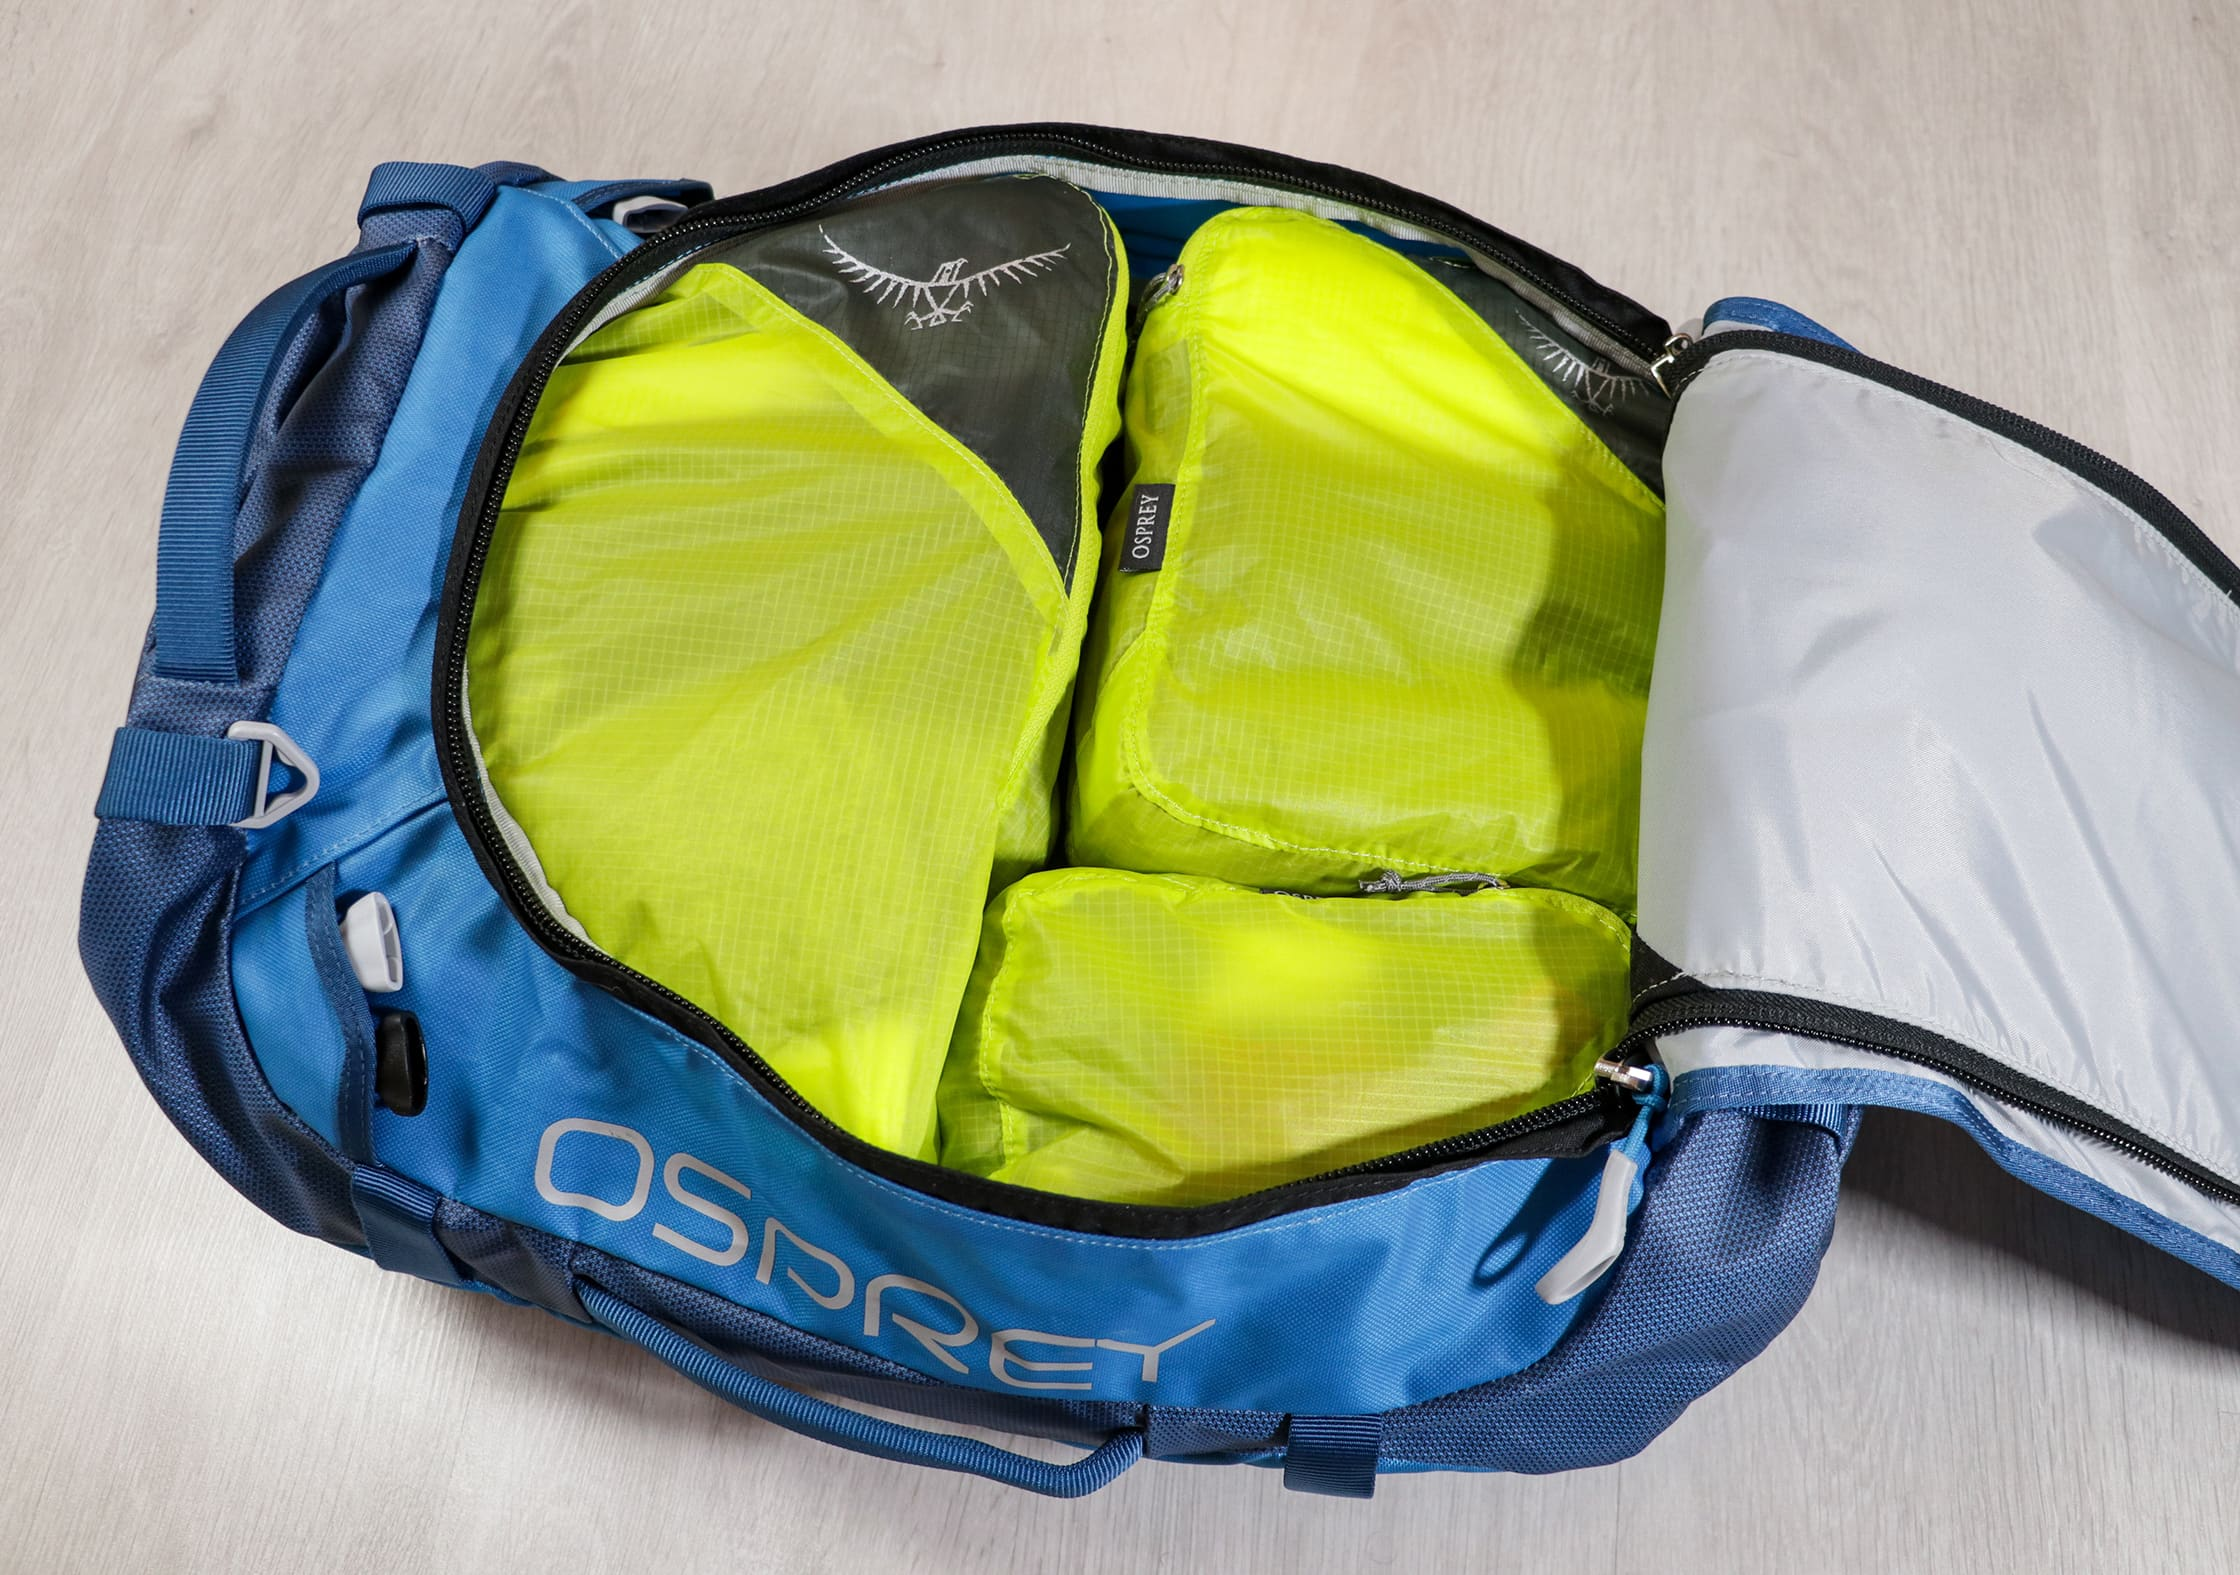 De ultimate packing cubes guide! Kies de juiste cube!